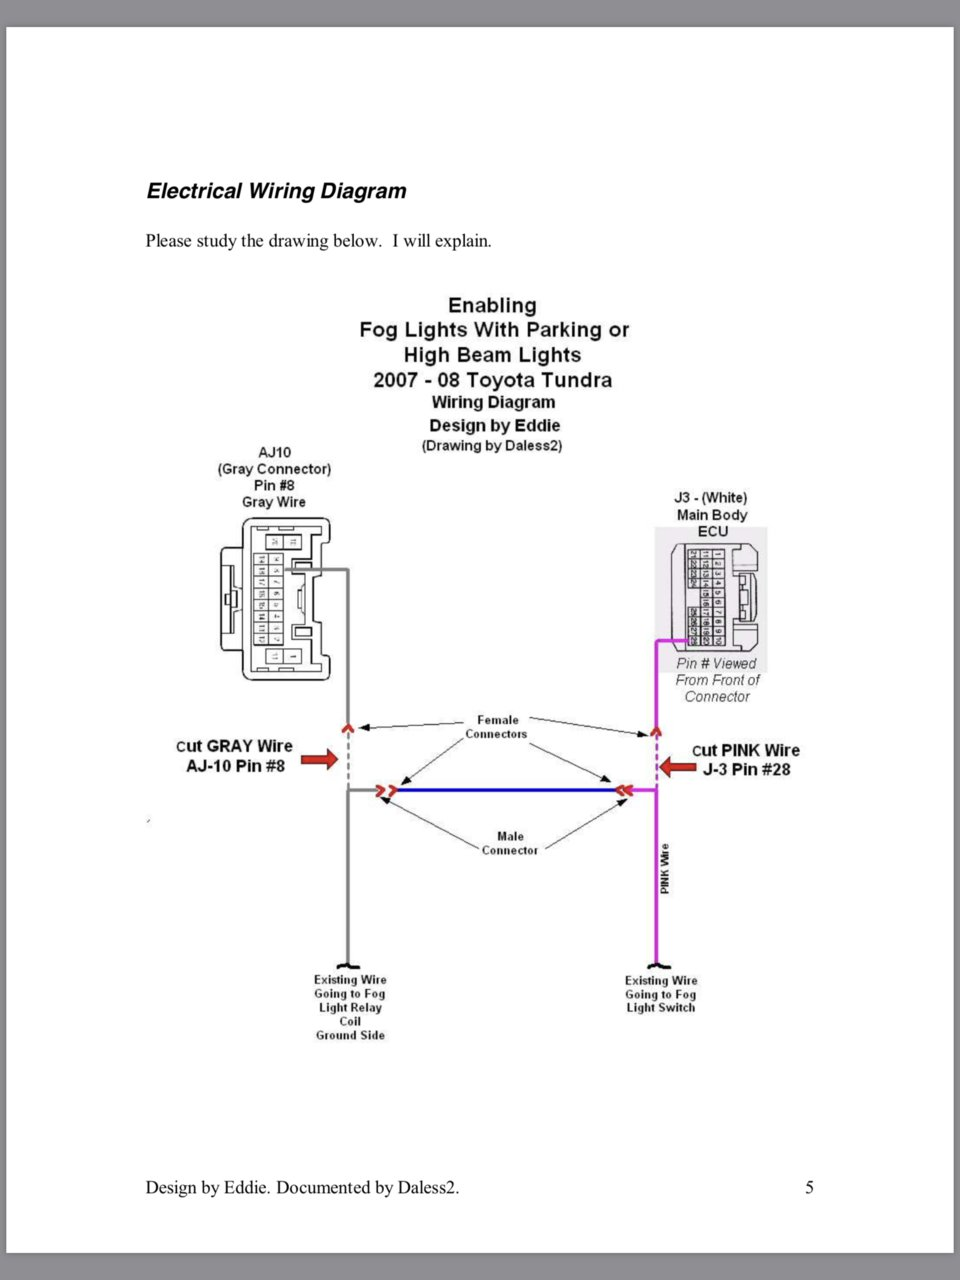 medium resolution of fj fog light switch harness 07 tundra wiring diagram trusted wiring diagram 2014 toyota tundra wire diagram 2007 tundra electrical diagram